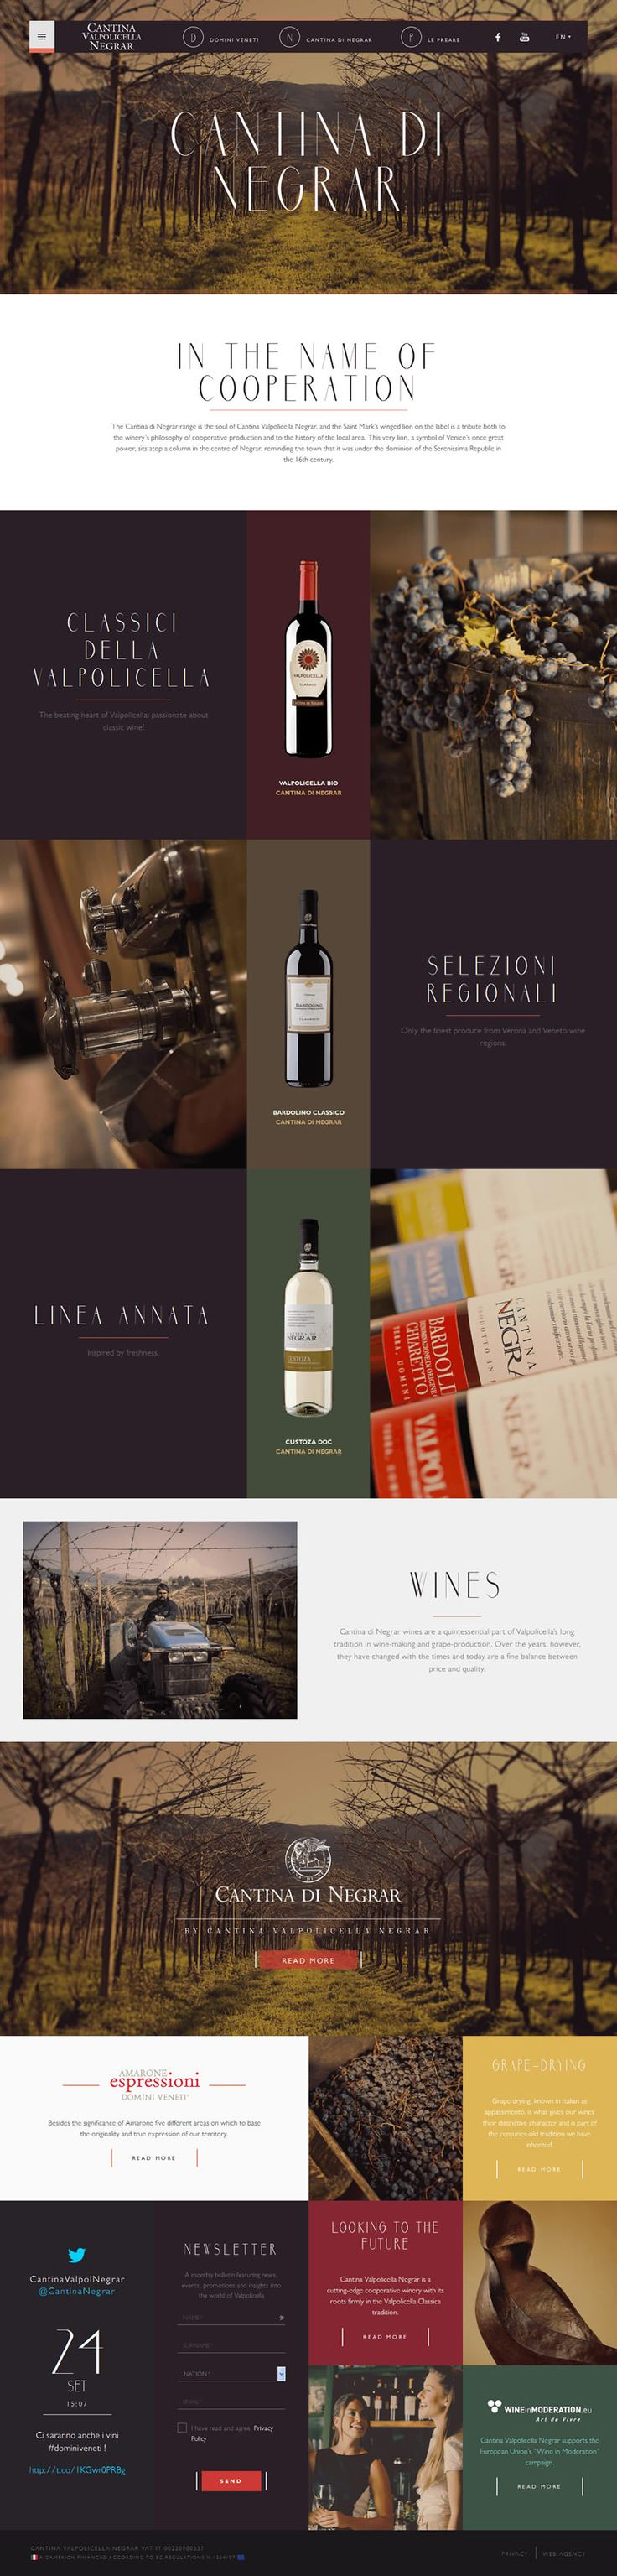 Site demonstrates a great use of color pallet that compliments the other images and overall layout. As I prepare to design my Tour of Wine Country mobile and tablet, this site is a good source of inspiration. #grid #webdesign #wine